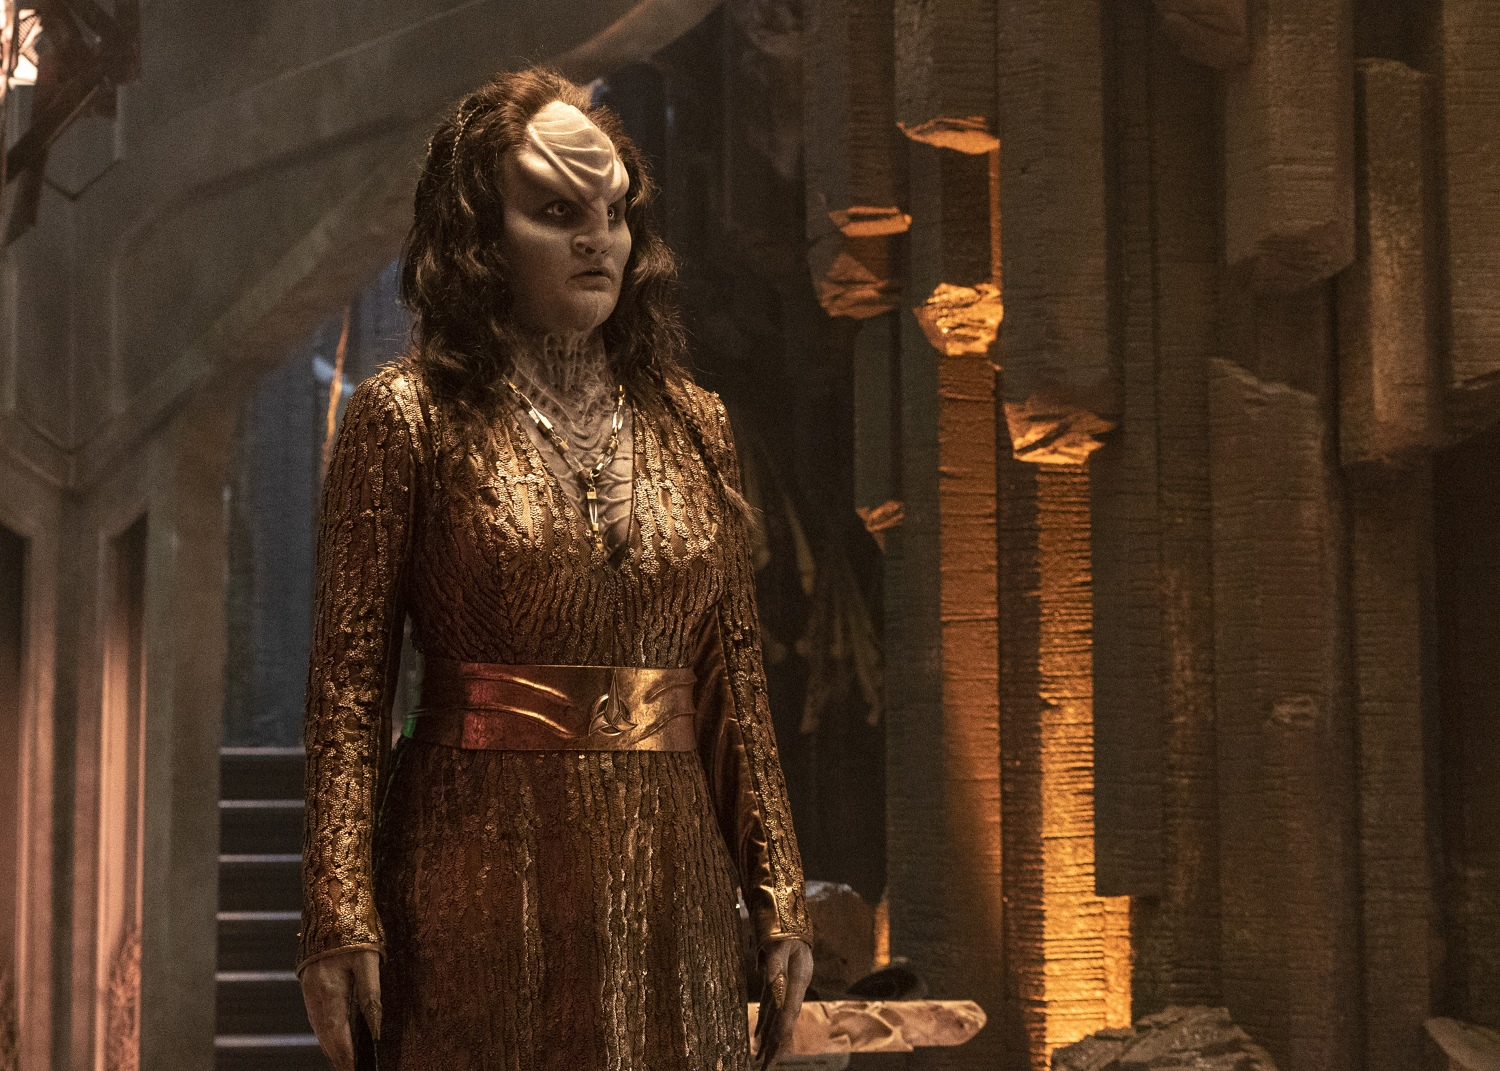 Star Trek Discovery Klingon hair caves to fan demand, turning back time and the clock